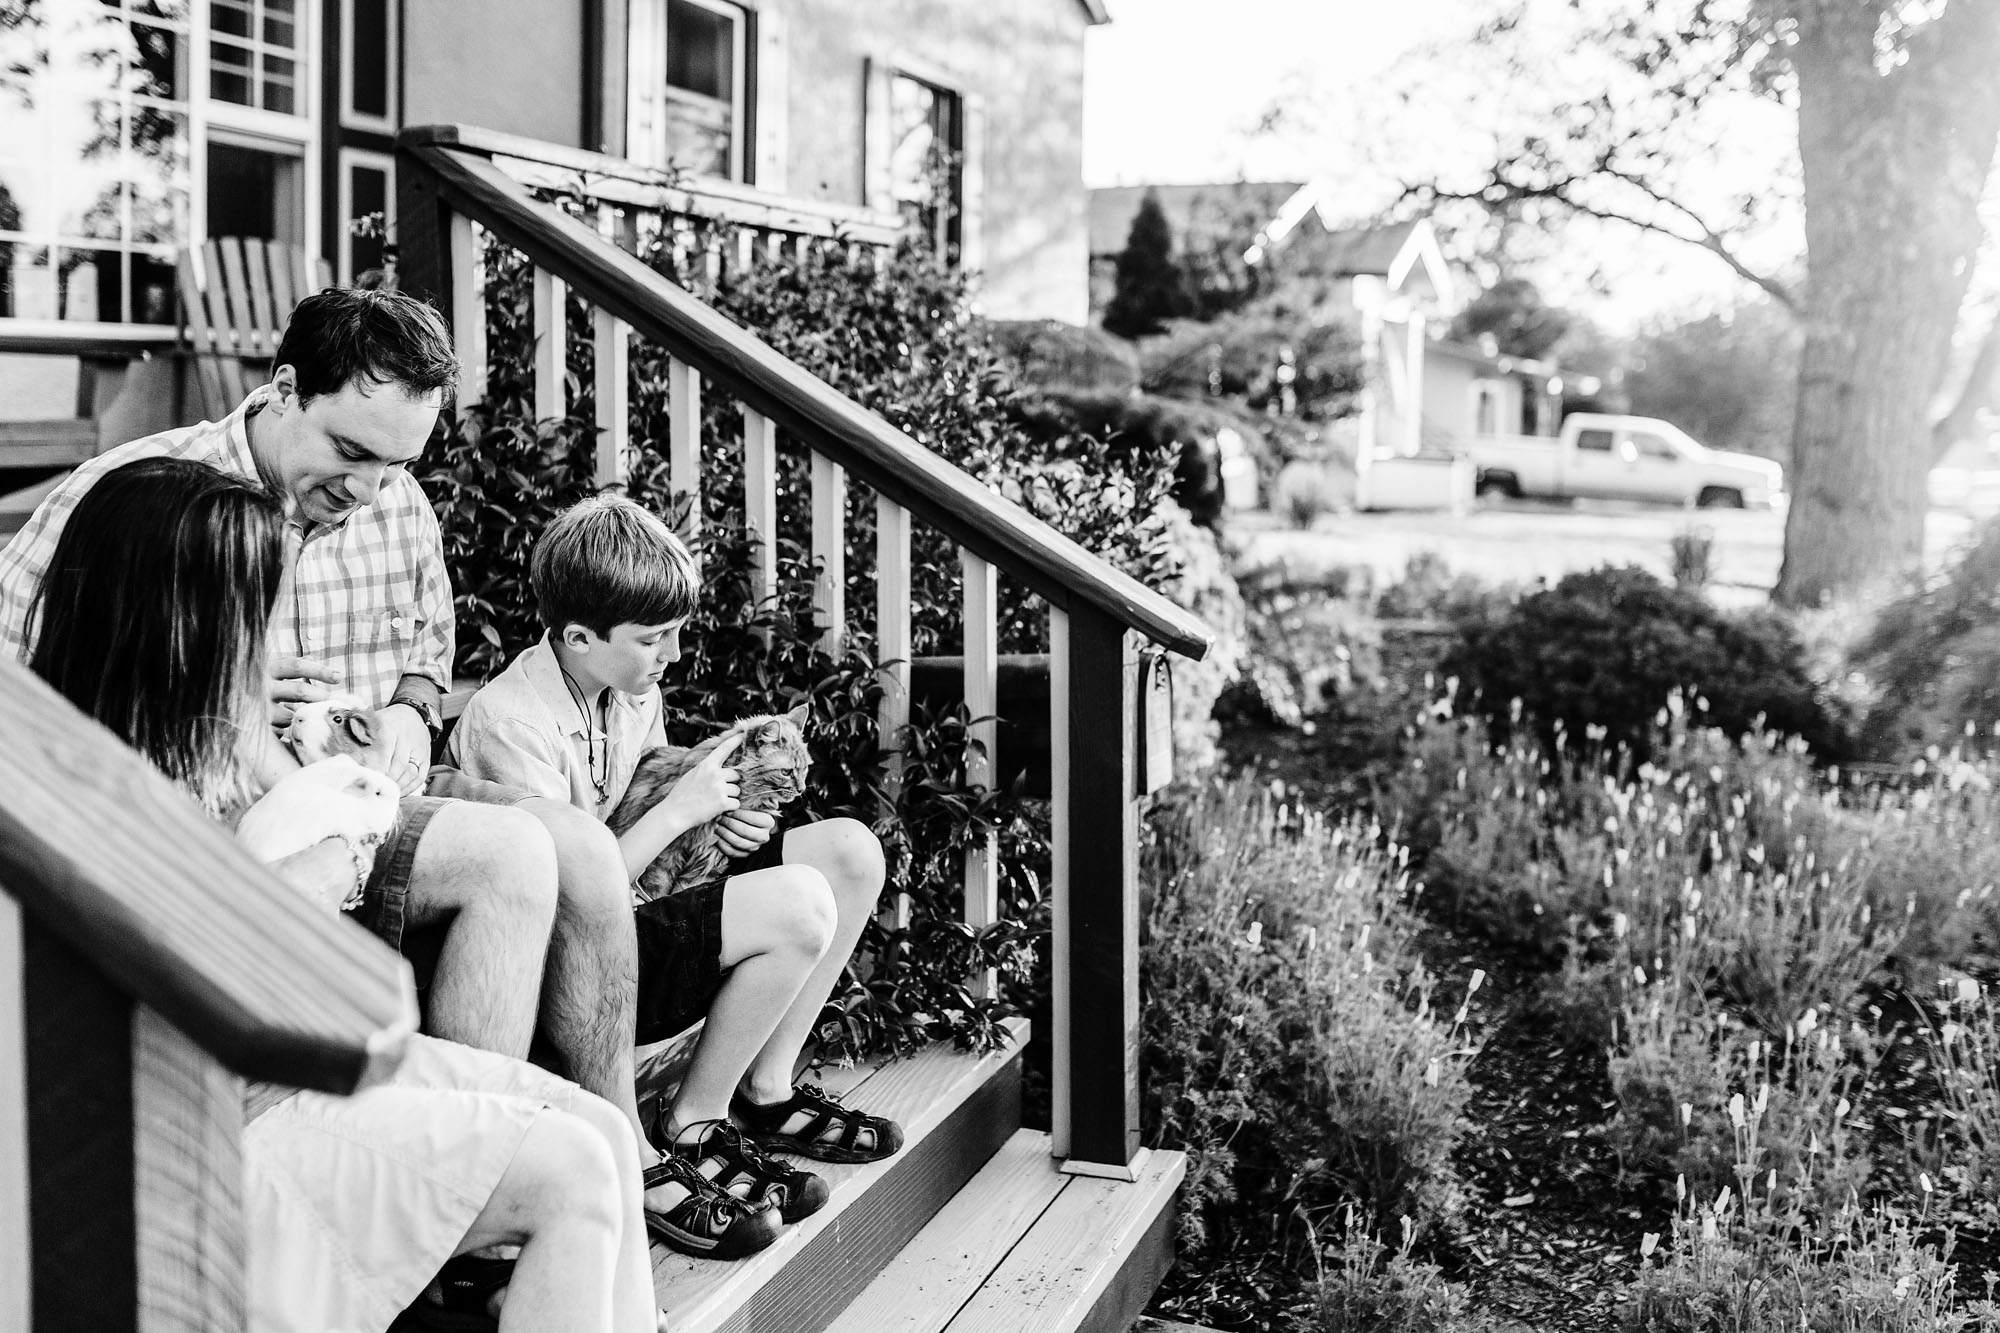 A family sits on their porch with their pets during an evening lifestyle photo session with Roseville photographer Amy Wright.